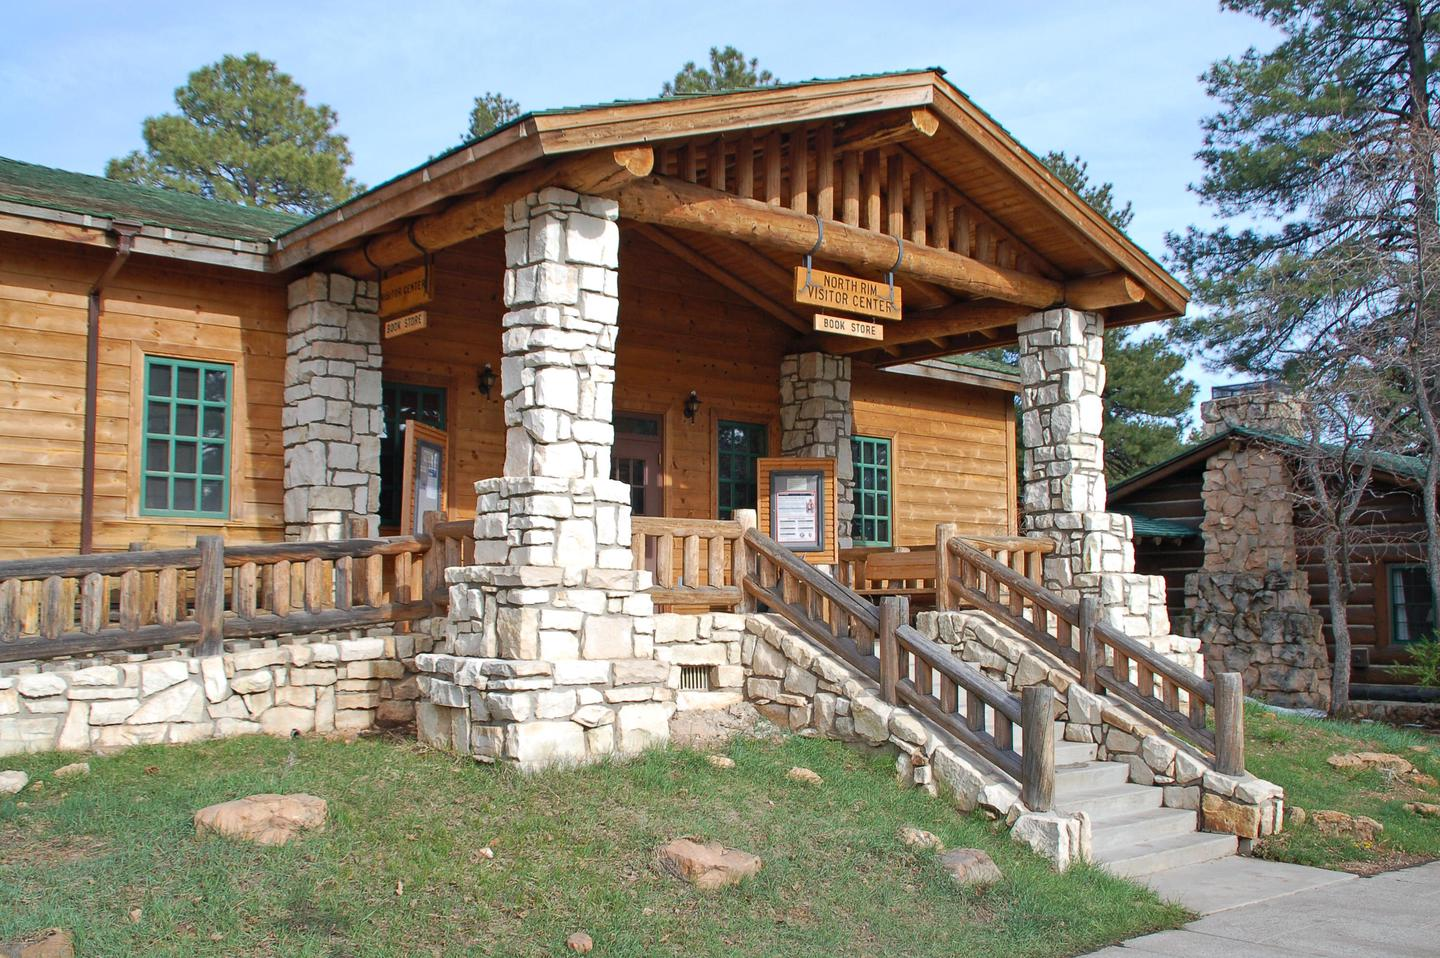 Grand Canyon National Park: North Rim Visitor Center 0109Located adjacent to the parking lot on Bright Angel Peninsula, by the Grand Canyon Lodge. The North Rim Visitor Center has park and regional information, maps, brochures, exhibits, and a bookstore. Open mid-May to mid-October, from 8:00 a.m. to 6:00 p.m.